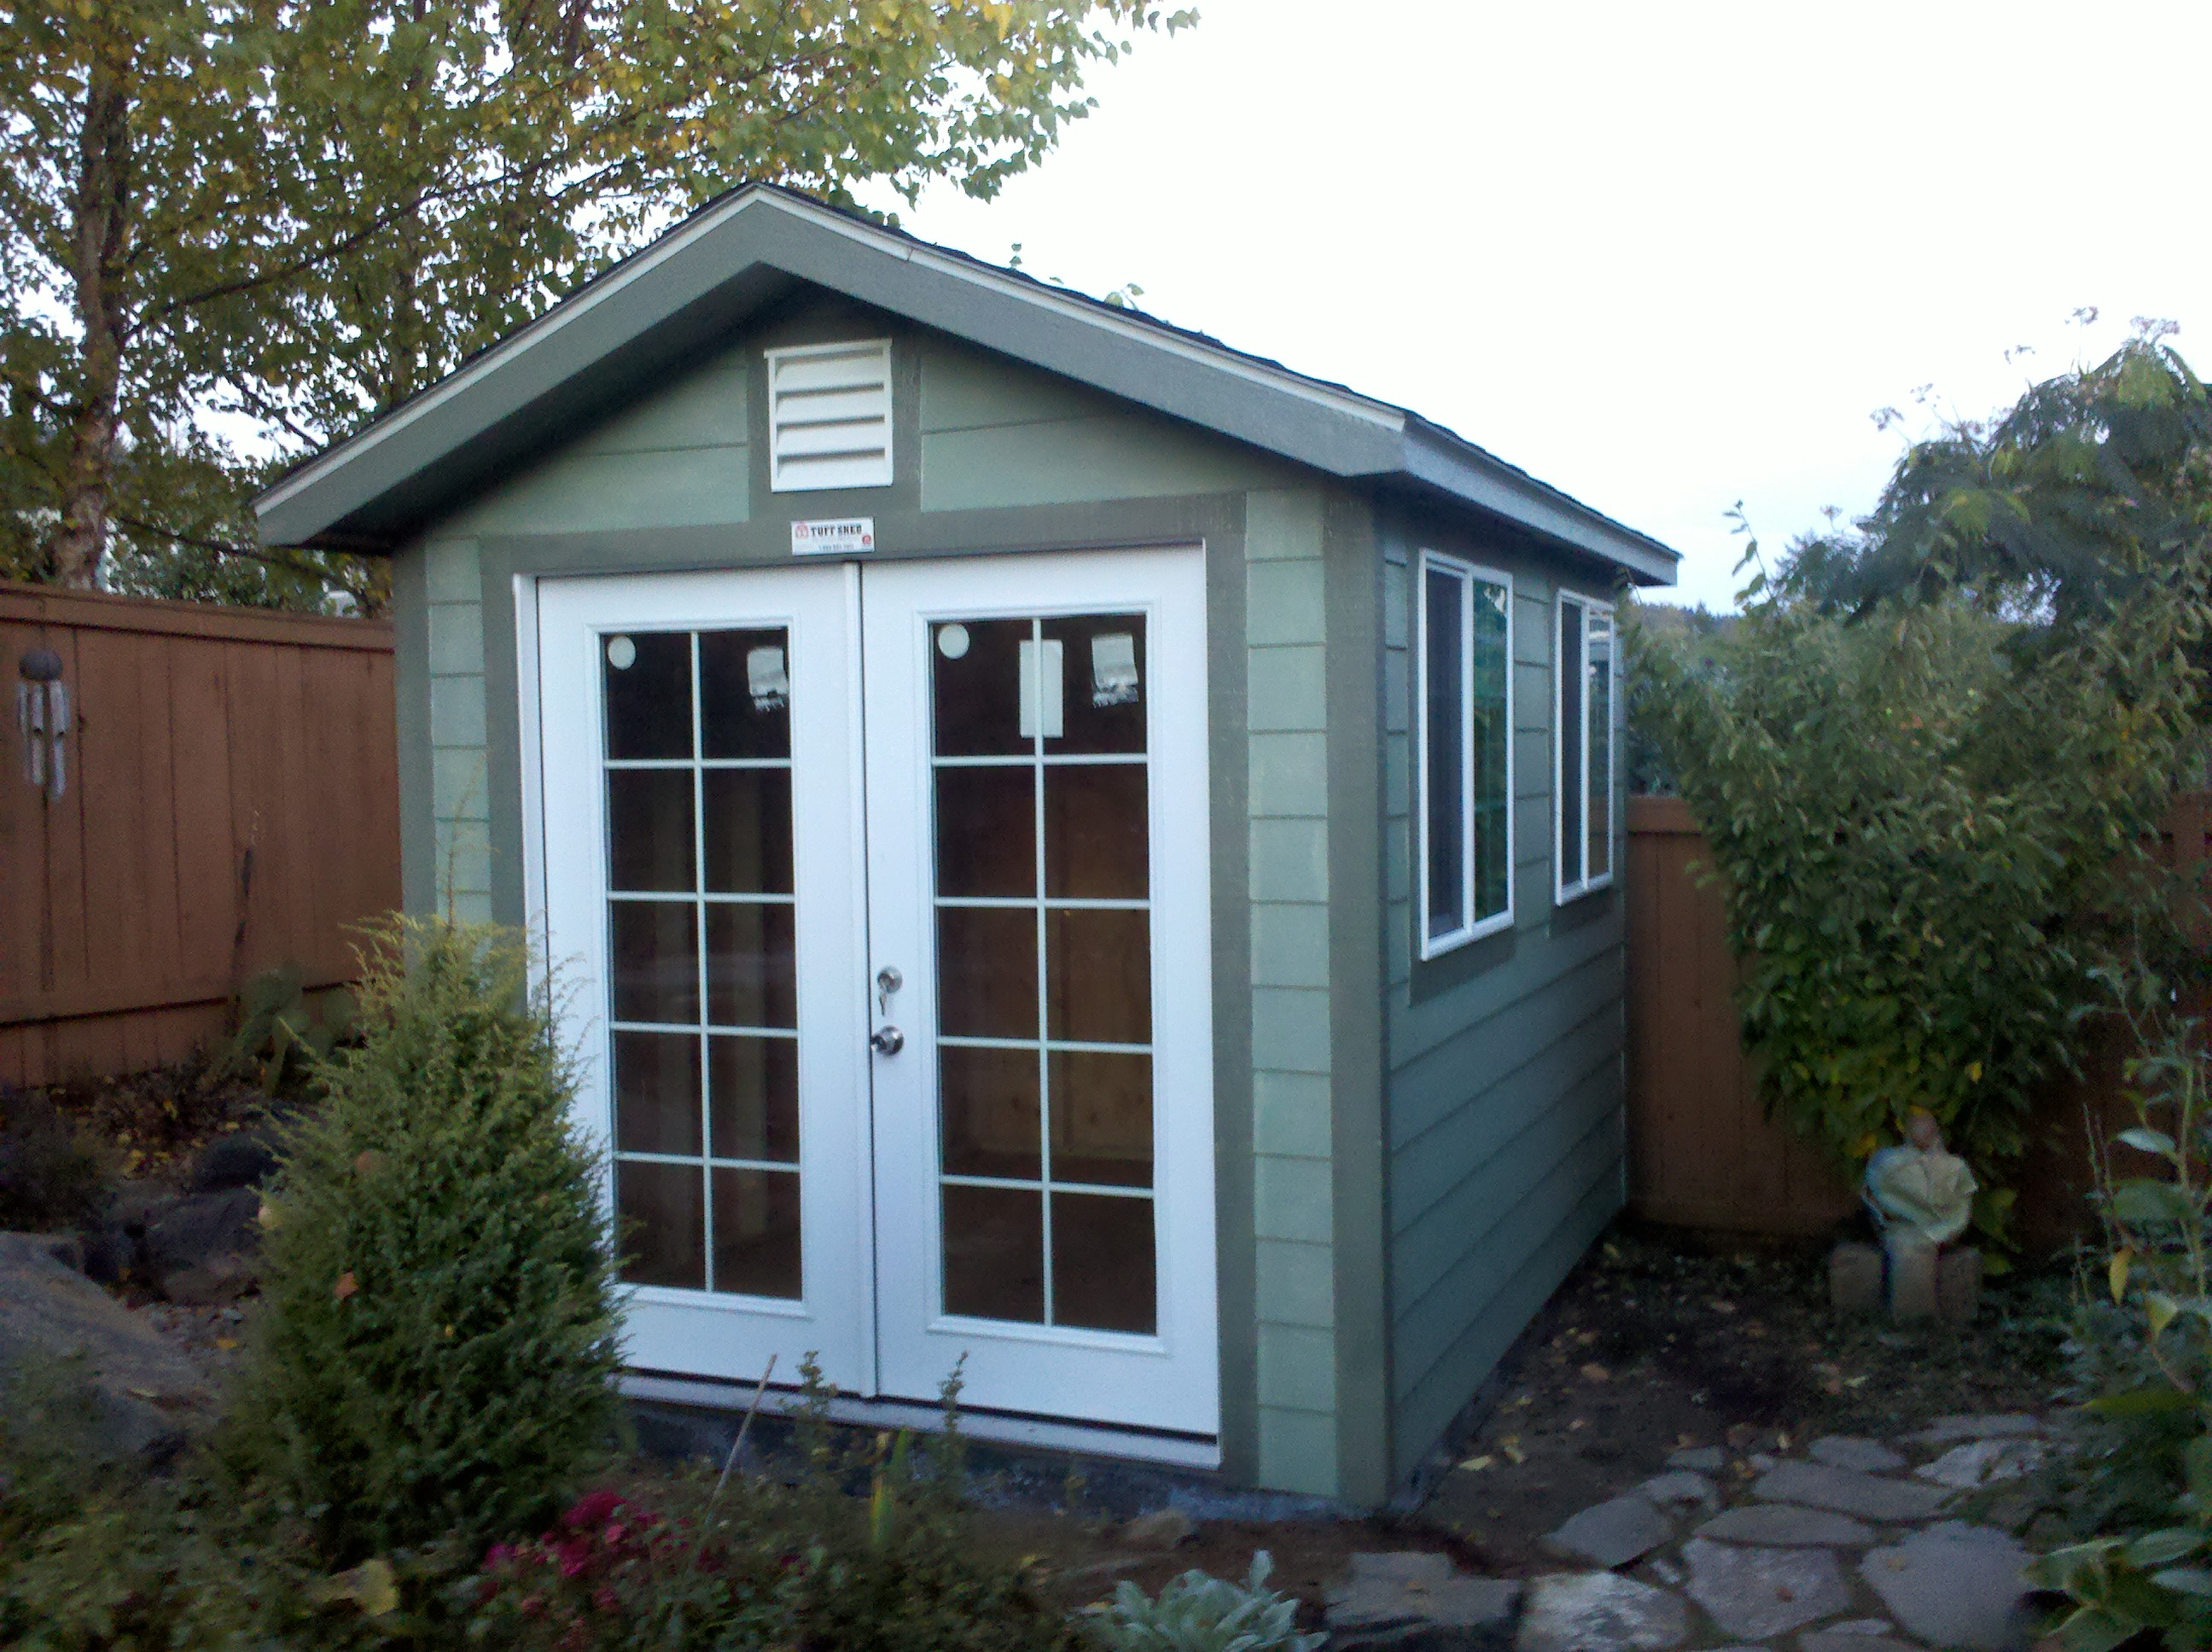 pro practical size sheds garage your vehicle a shed small storage affordable to choice for as img and is the modified it tractor mid good protecting prefab investment buildings